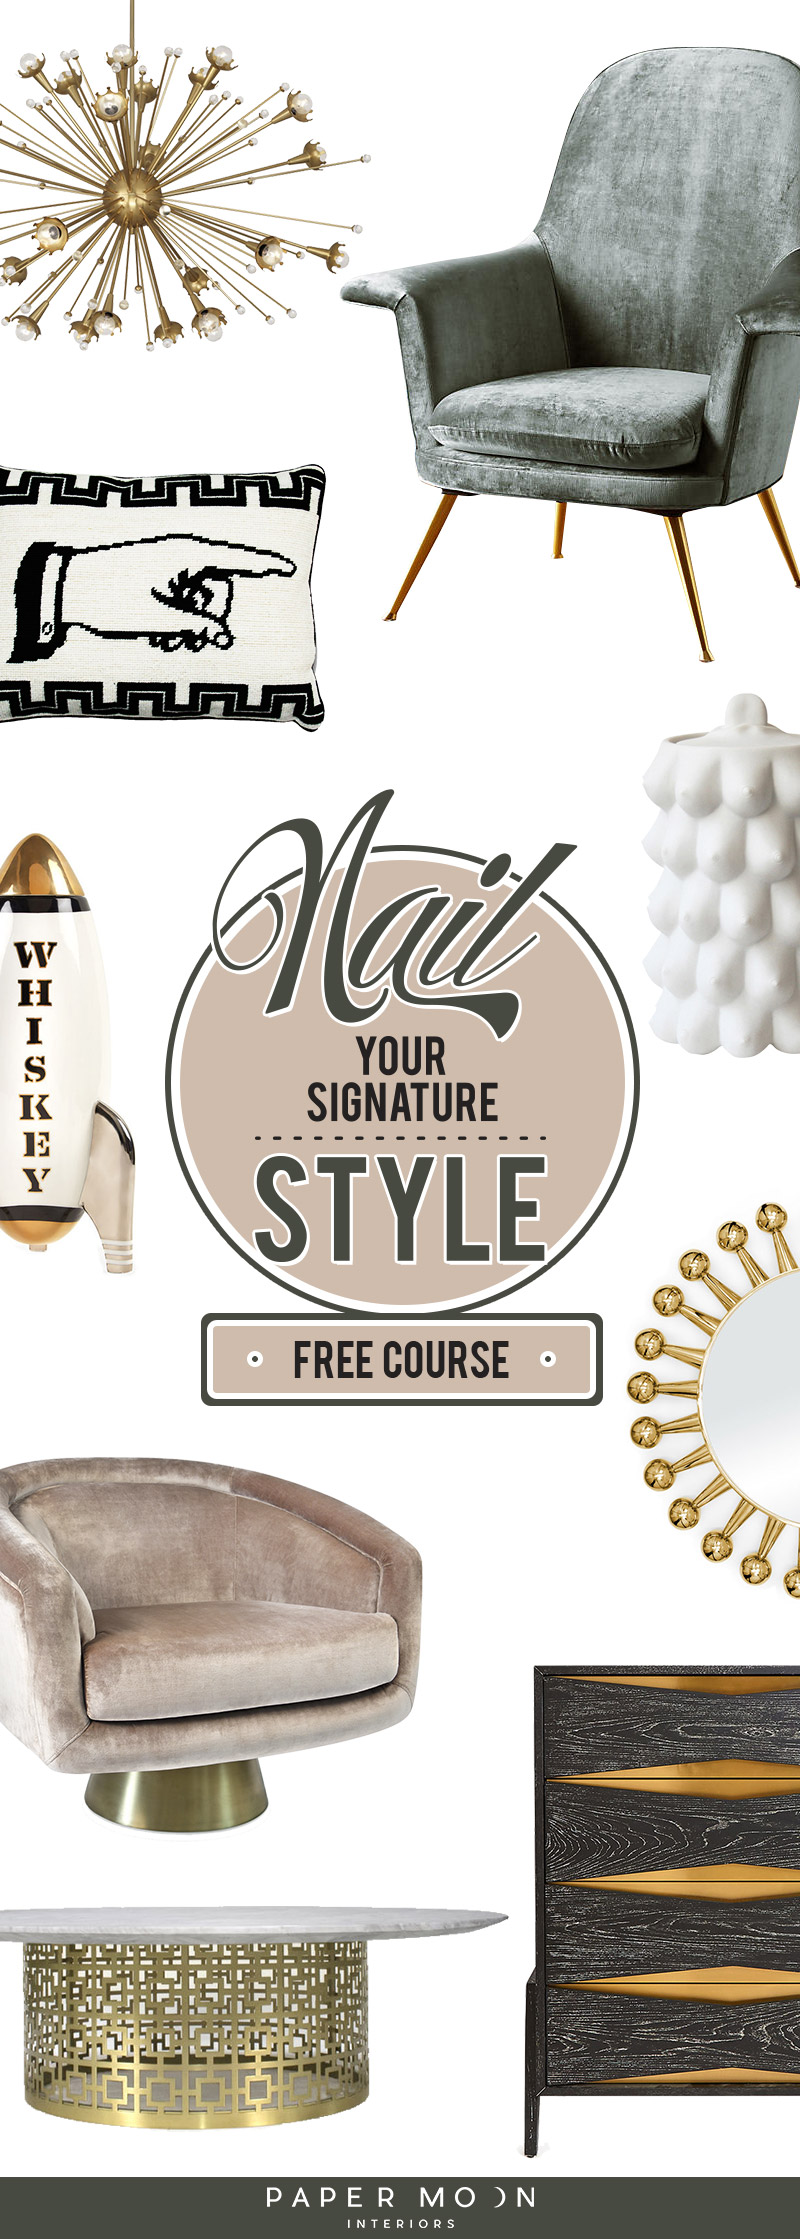 It's time to nail your signature interior design style with this free email course! You'll get eight email lessons, a workbook, and video masterclass. Stop pinning it and start nailing it!